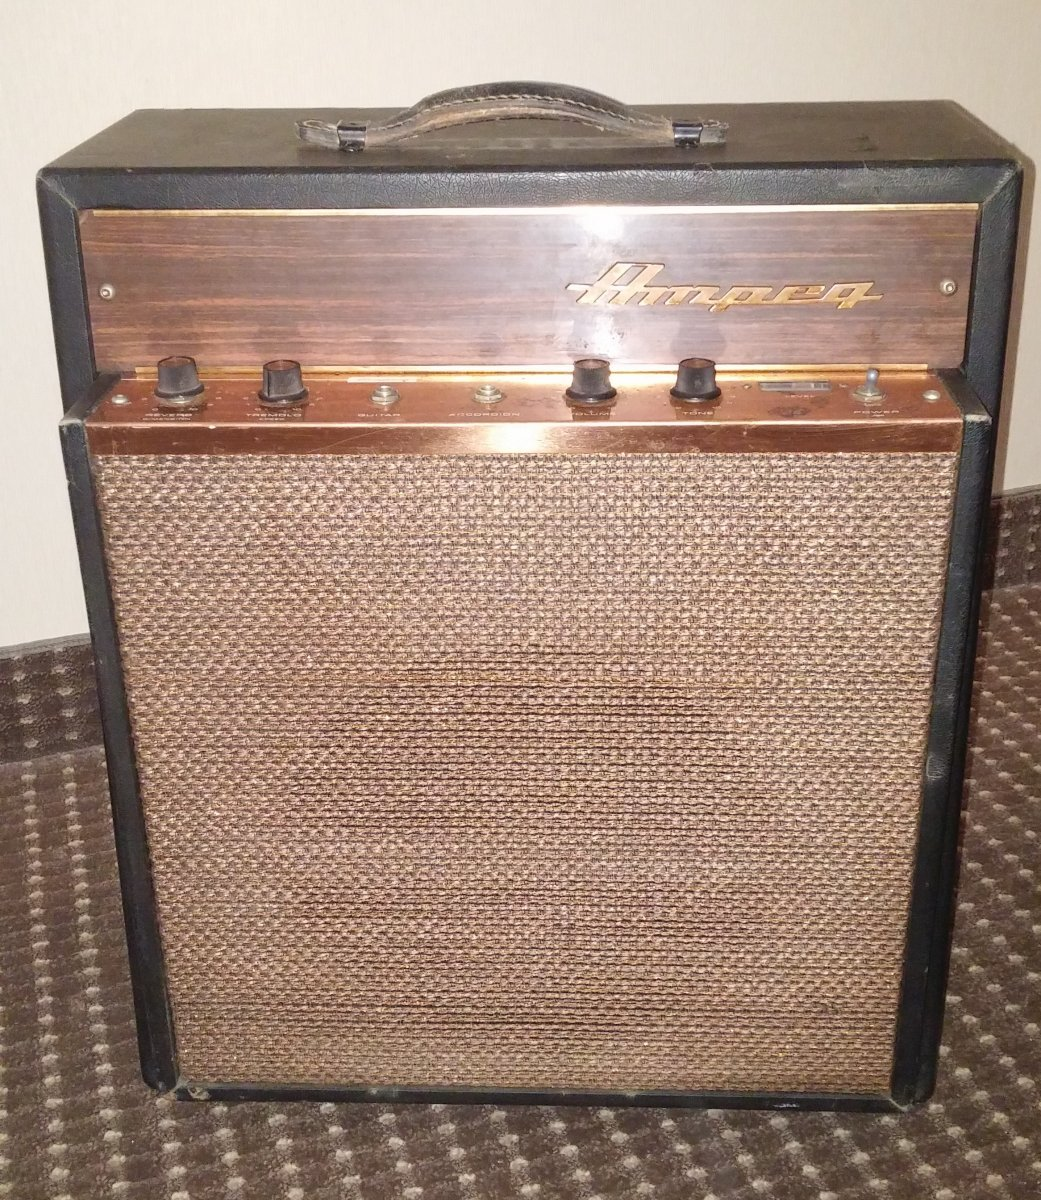 Amp front view.jpg